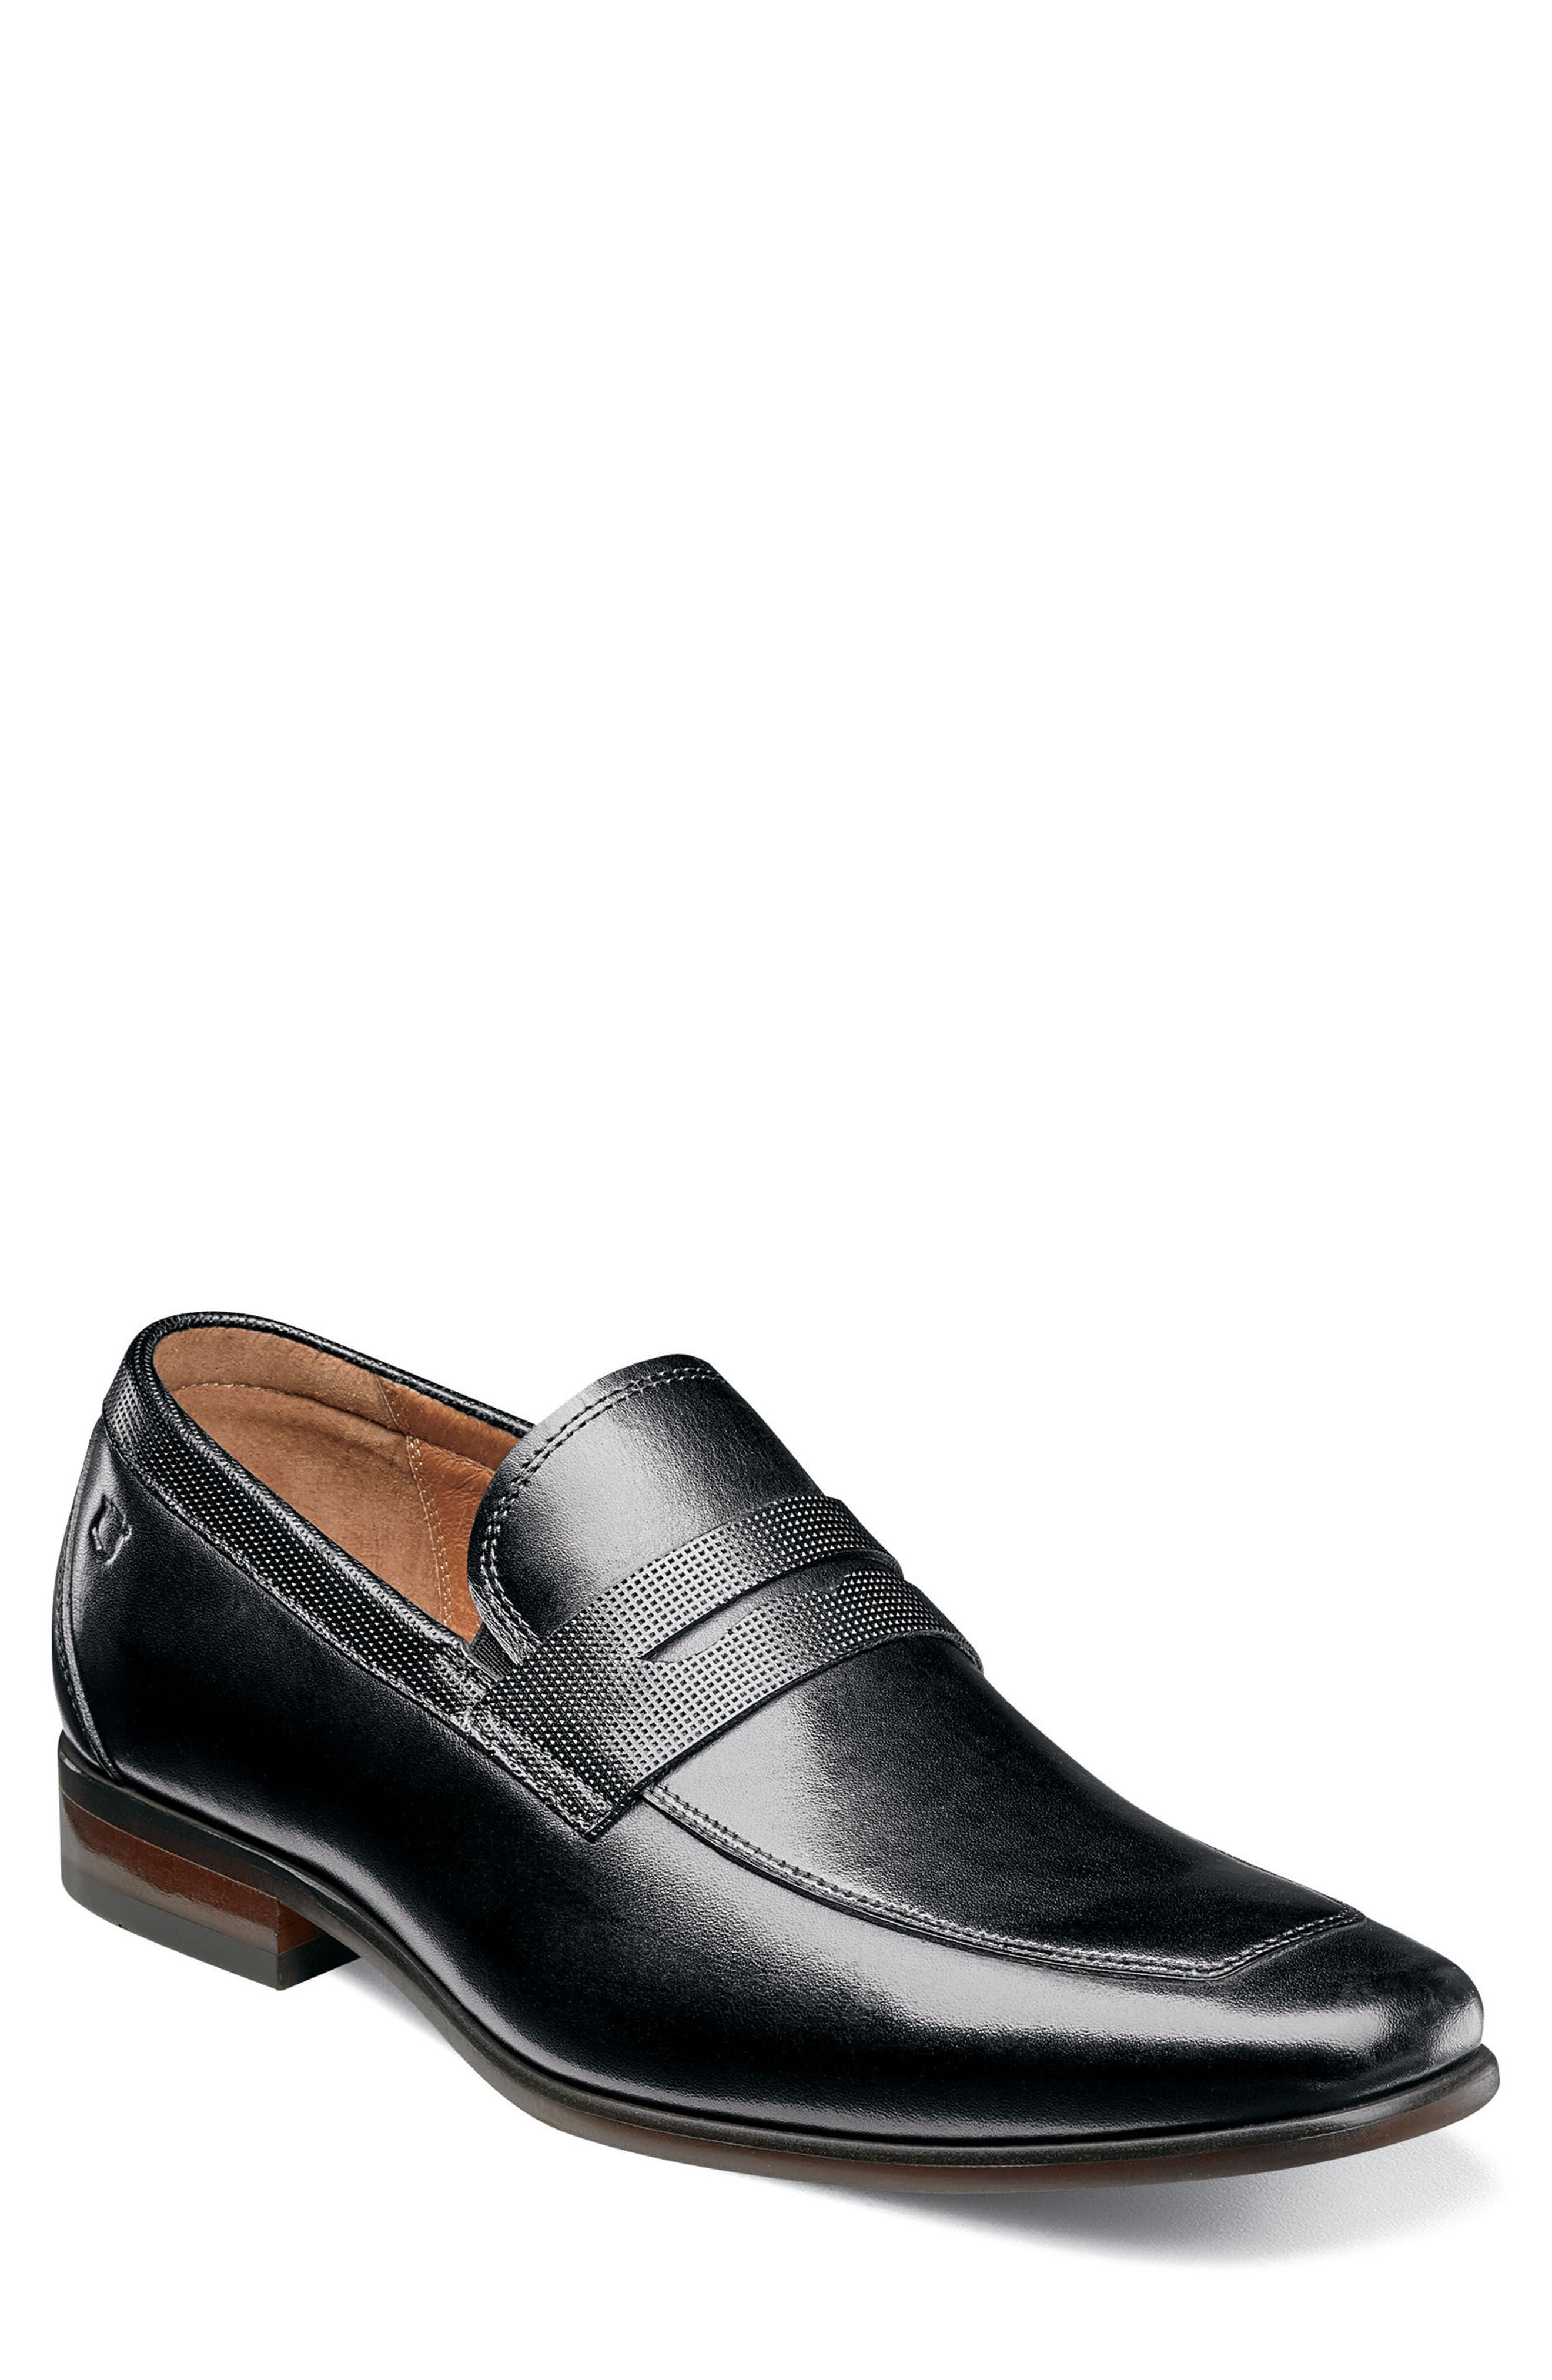 FLORSHEIM, Postino Apron Toe Textured Penny Loafer, Main thumbnail 1, color, BLACK LEATHER